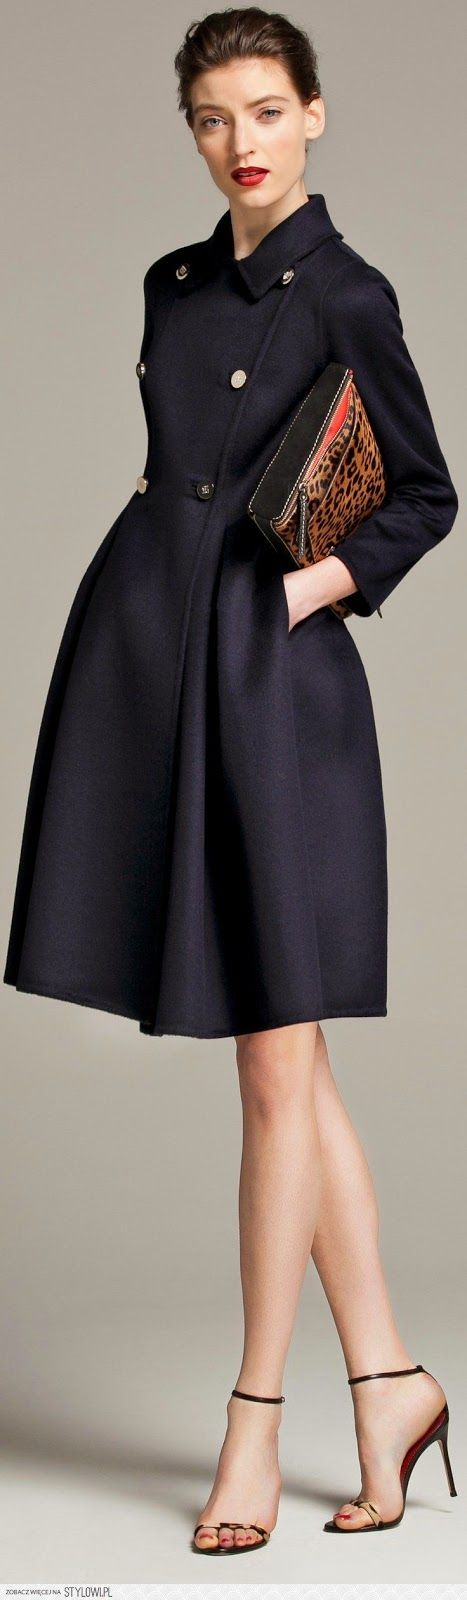 Luvtolook   Curating fashion and style: Elegance